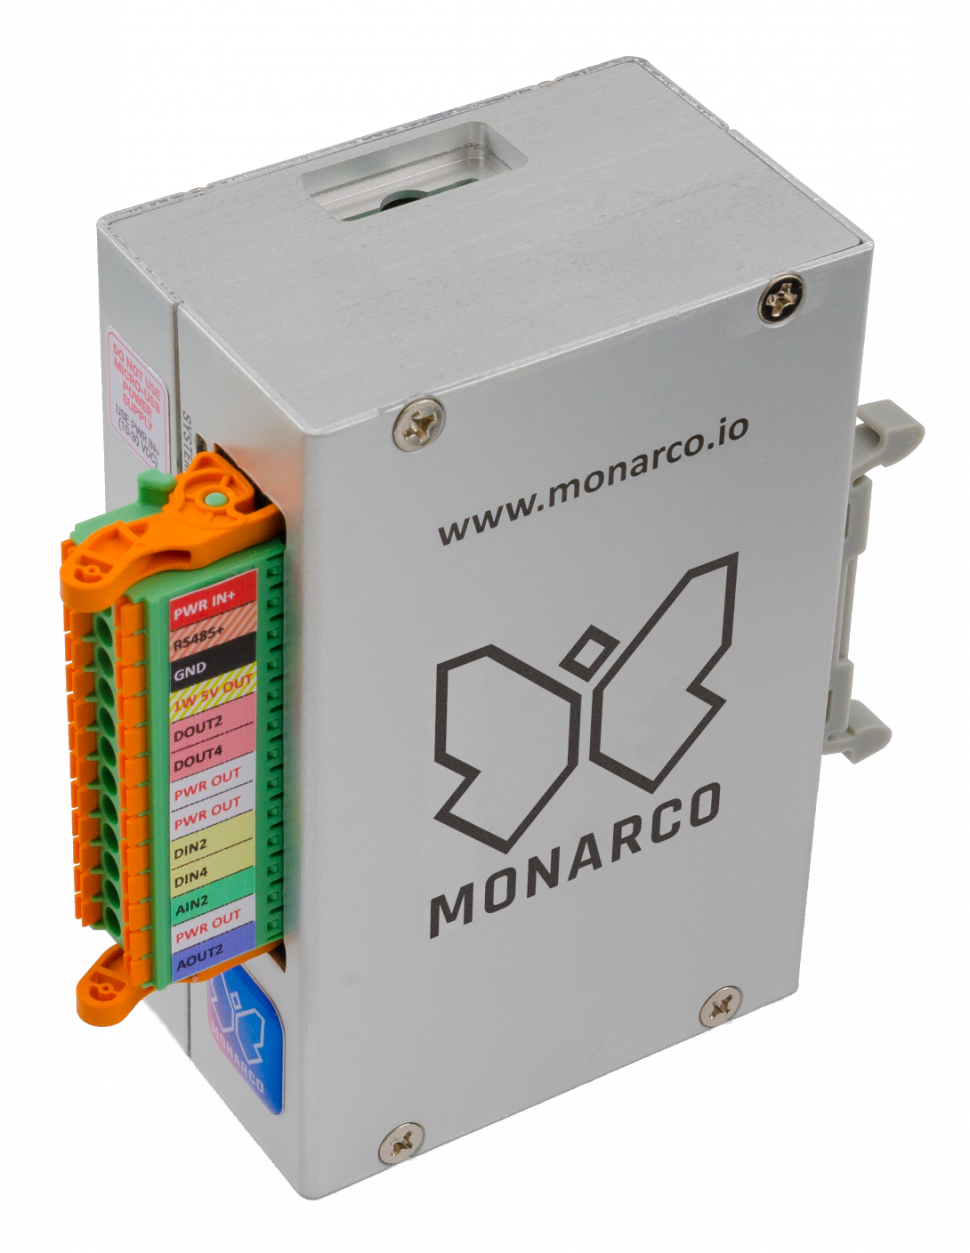 Monarco HAT and Raspberry Pi in a DIN-rail enclosure, vertical